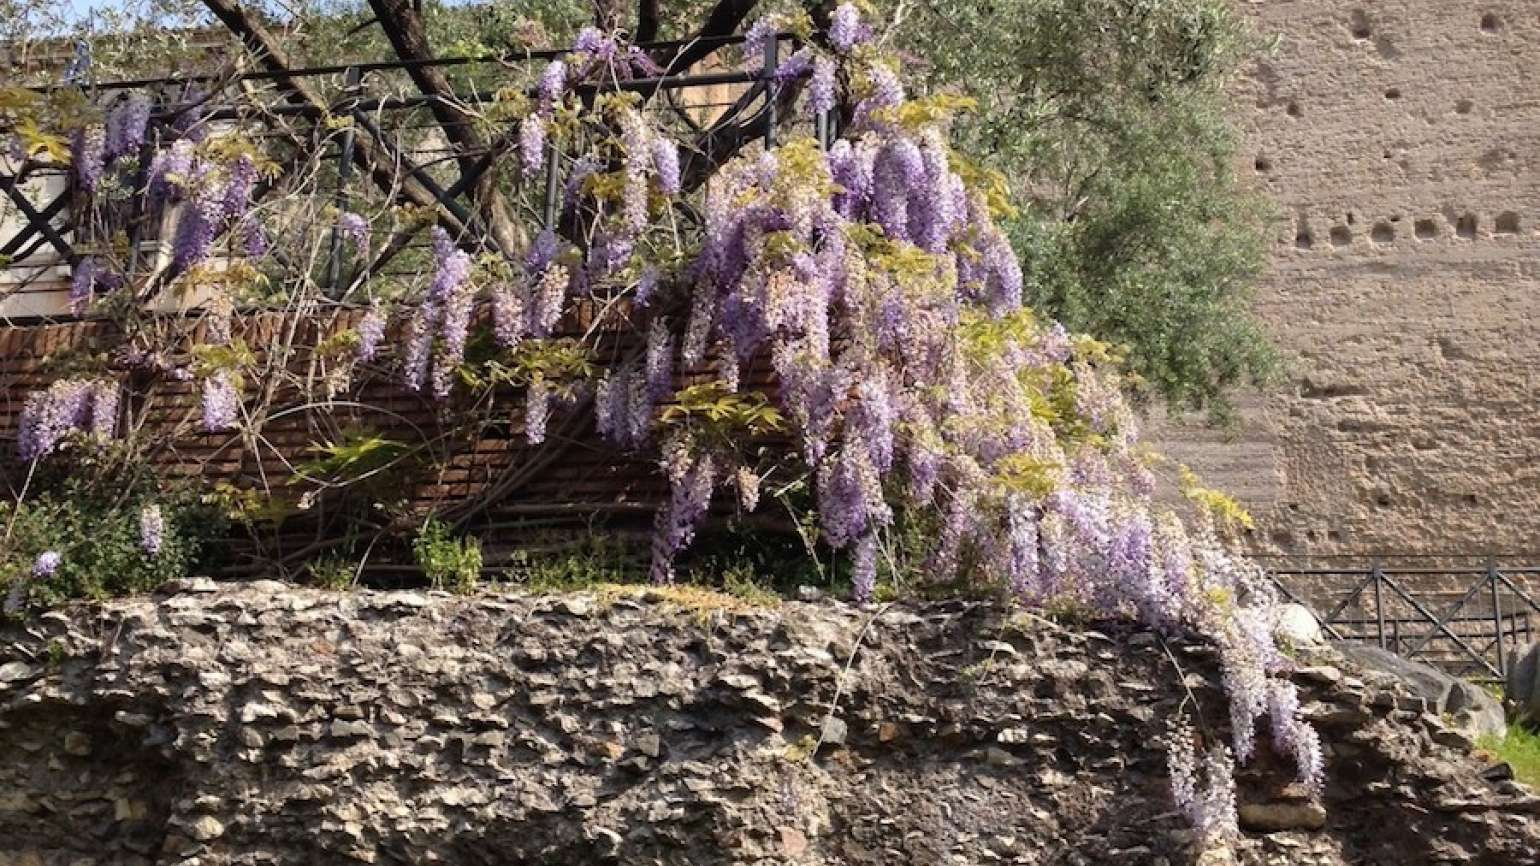 Wisteria blooming among Rome's ruins. Photo courtesy Rick Hamlin.